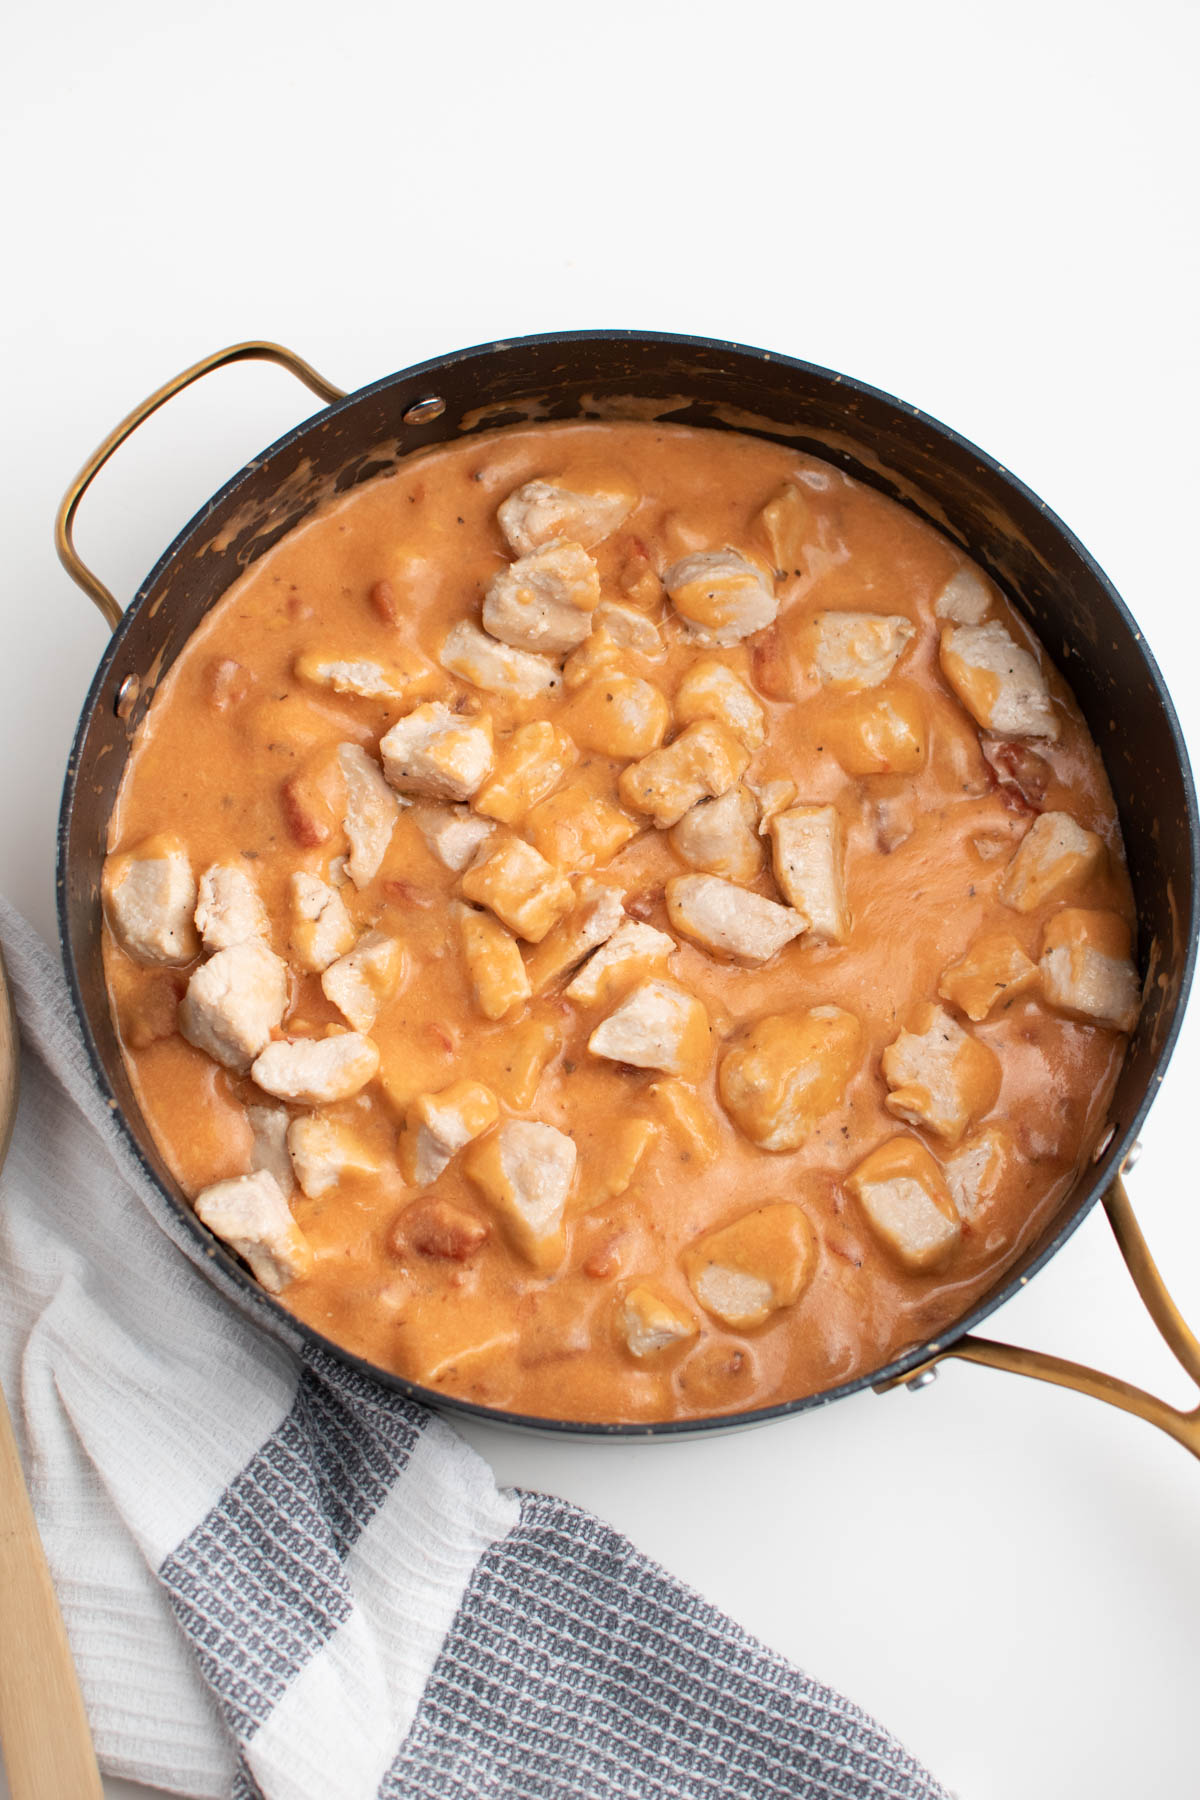 Cooked chicken cubes and cheesy tomato sauce in large skillet.